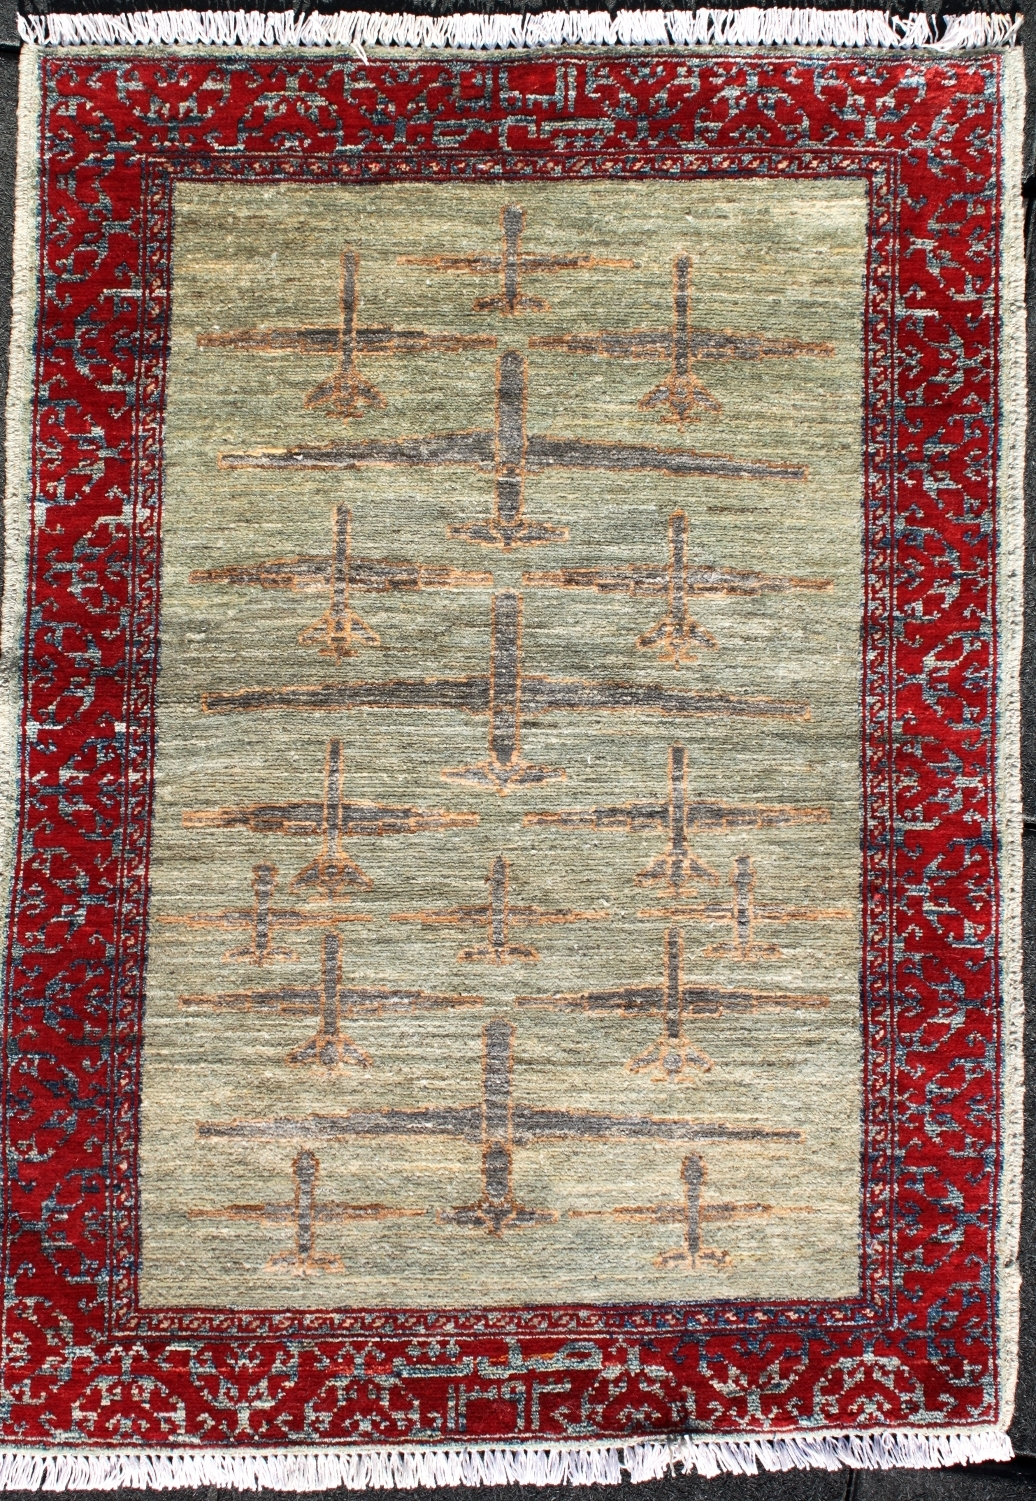 Rug Images War Rugs From Afghanistan Blog With Regard To Afghan Rug Types (Image 13 of 15)